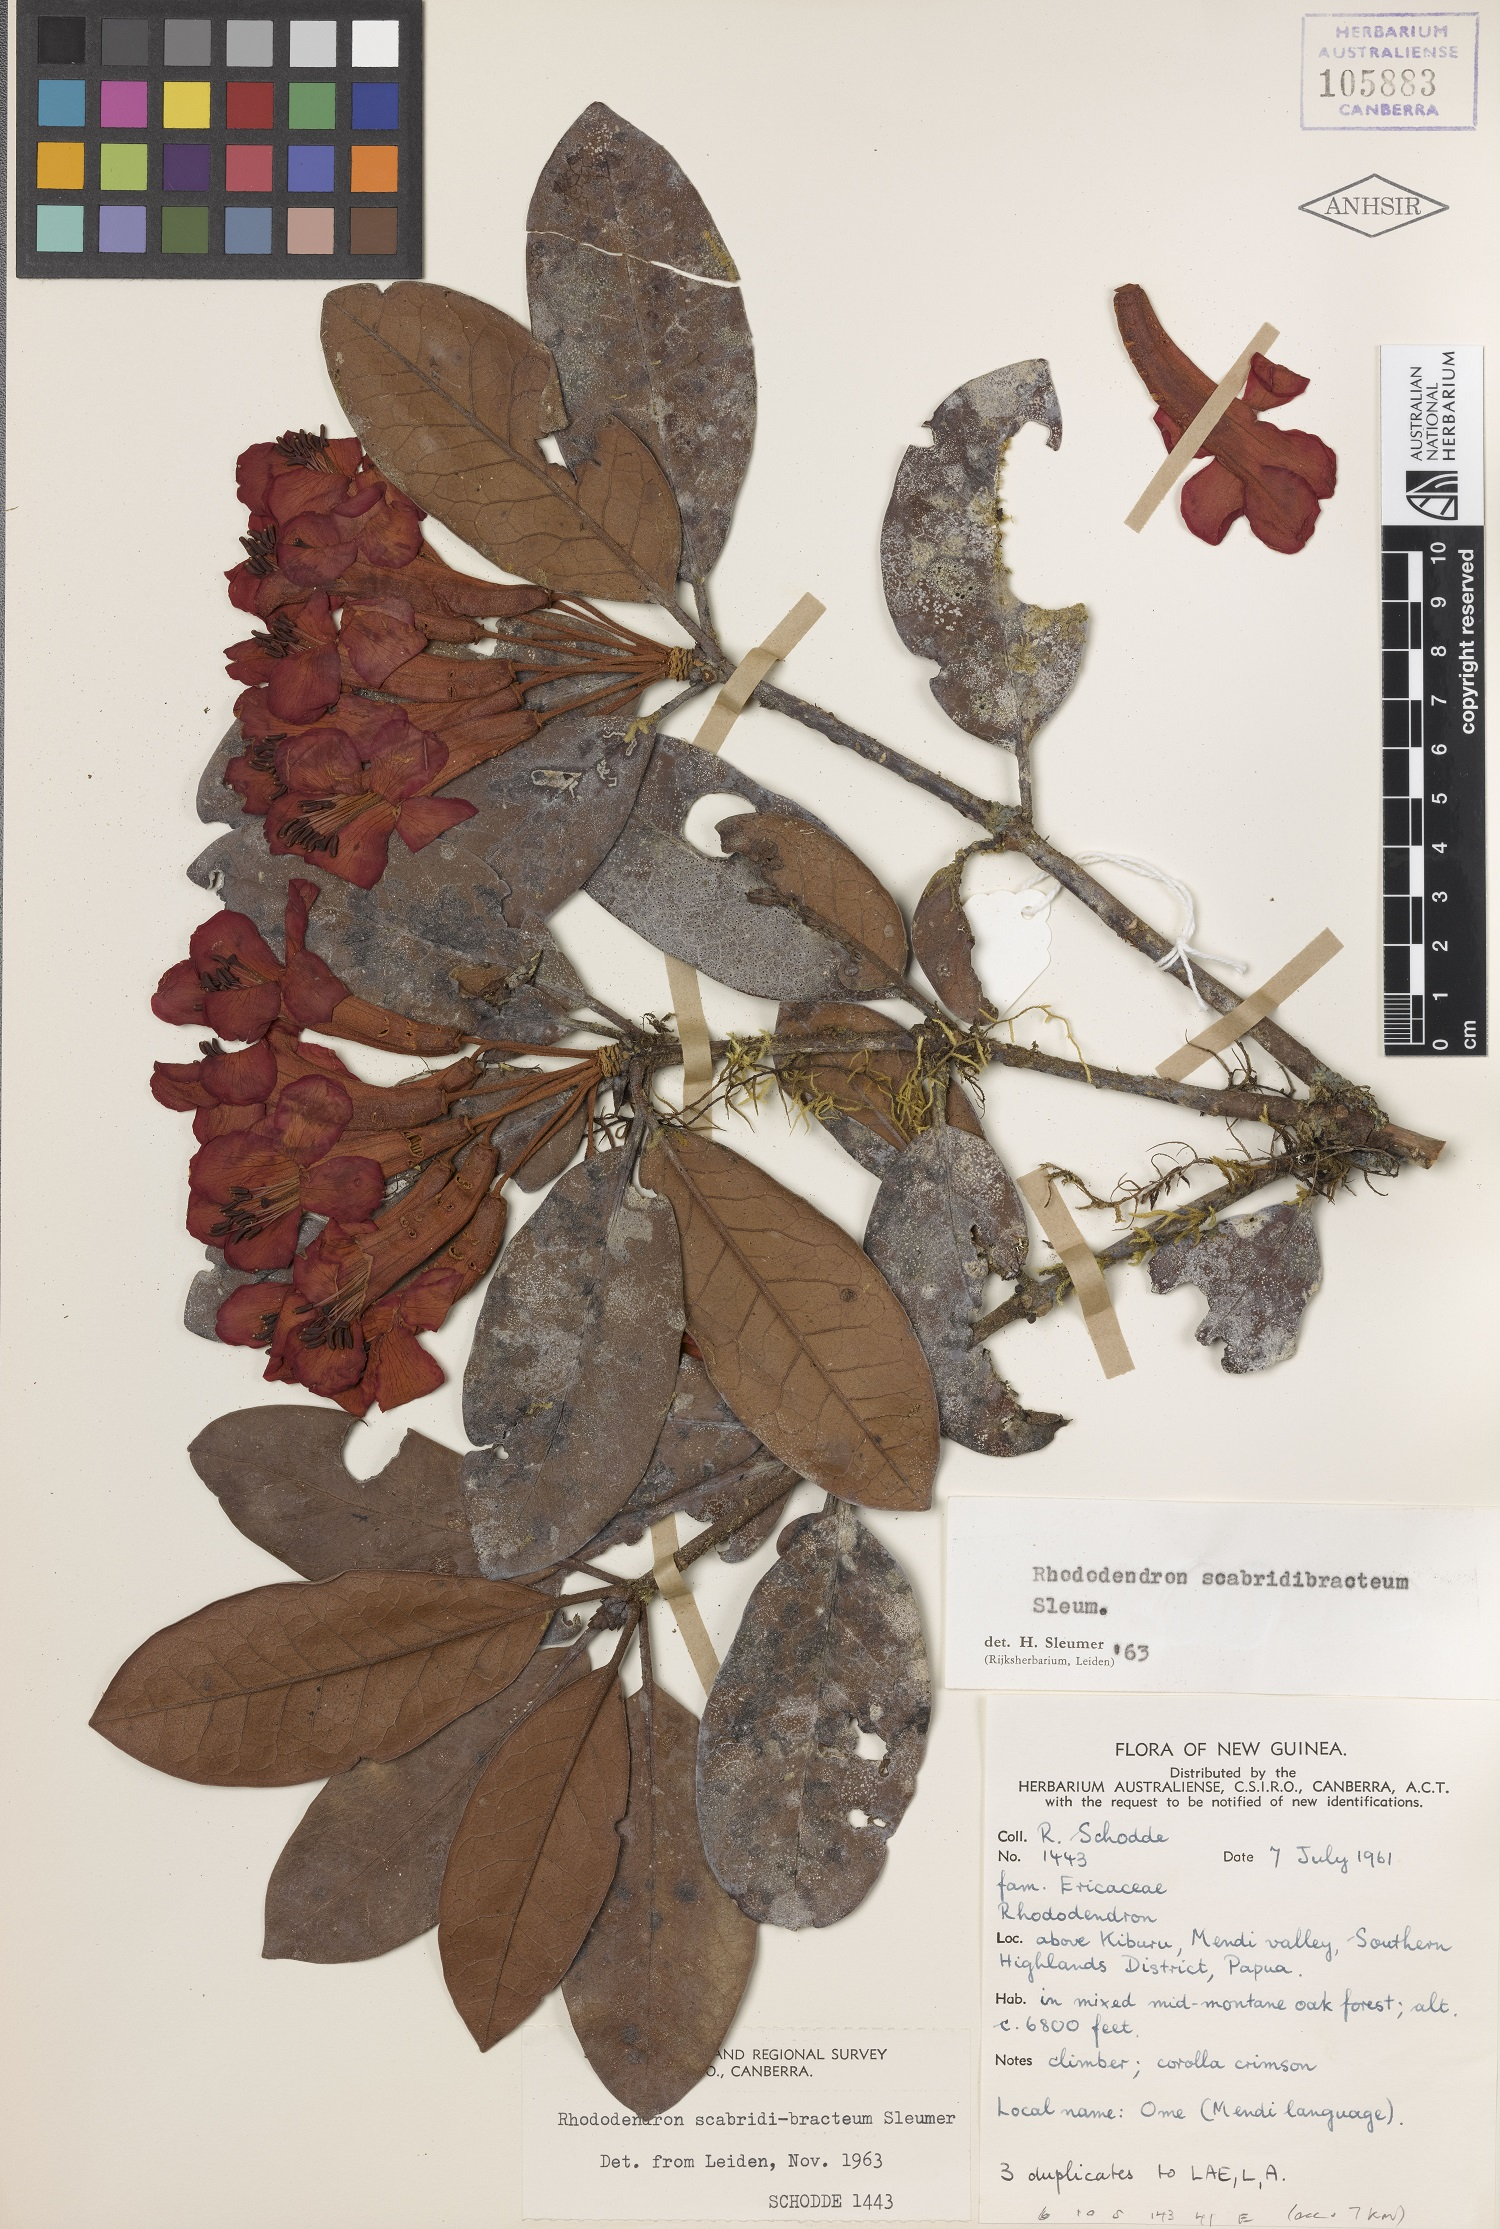 Herbarium sheet showing pressed and dried flowers and leaves of a rhododendron.